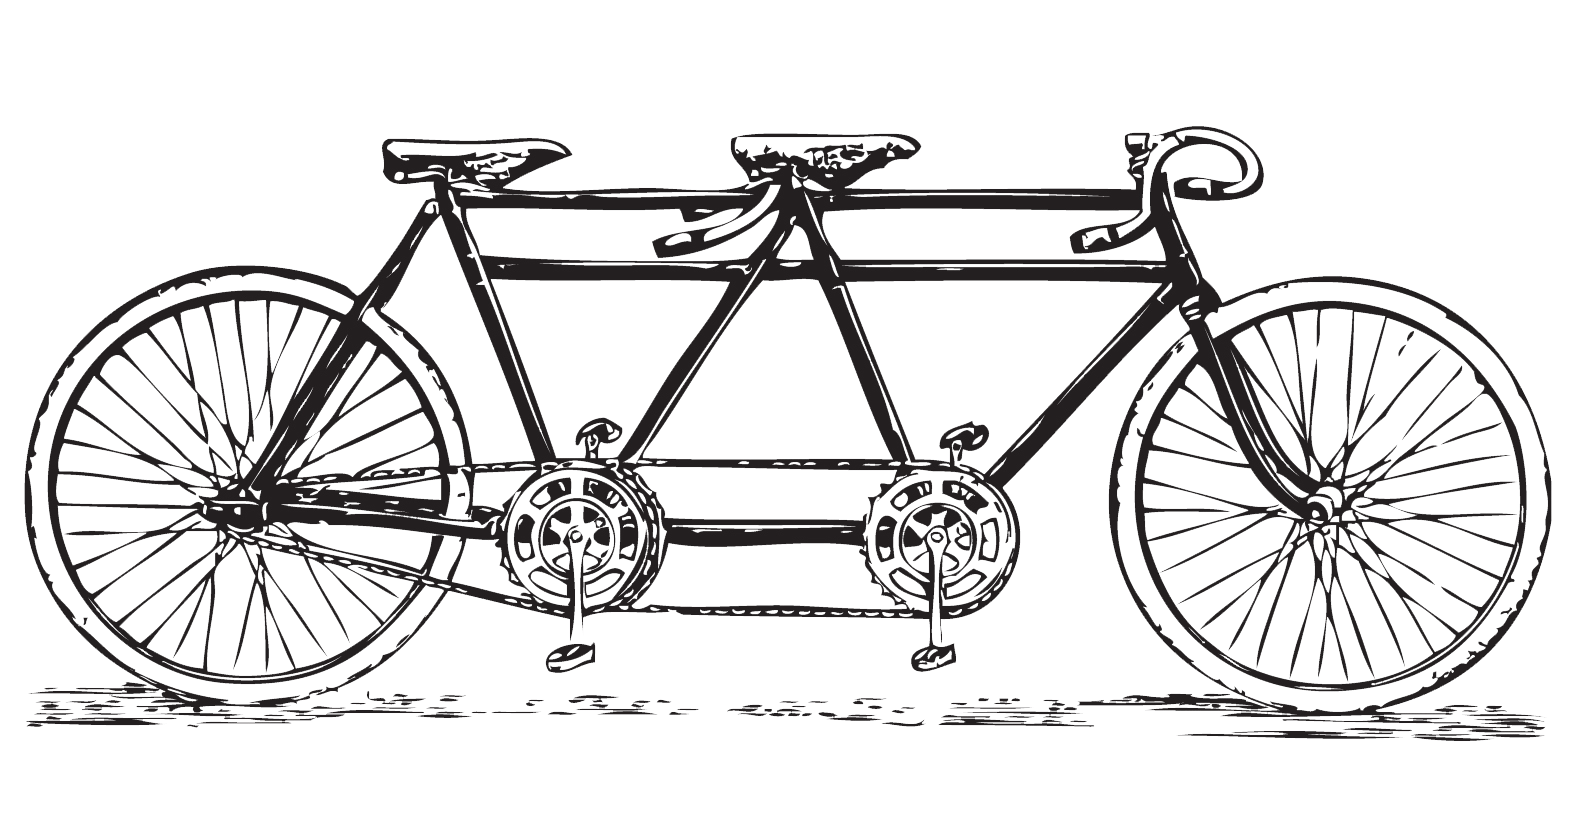 White clipart bike. Free vintage tandem bicycle